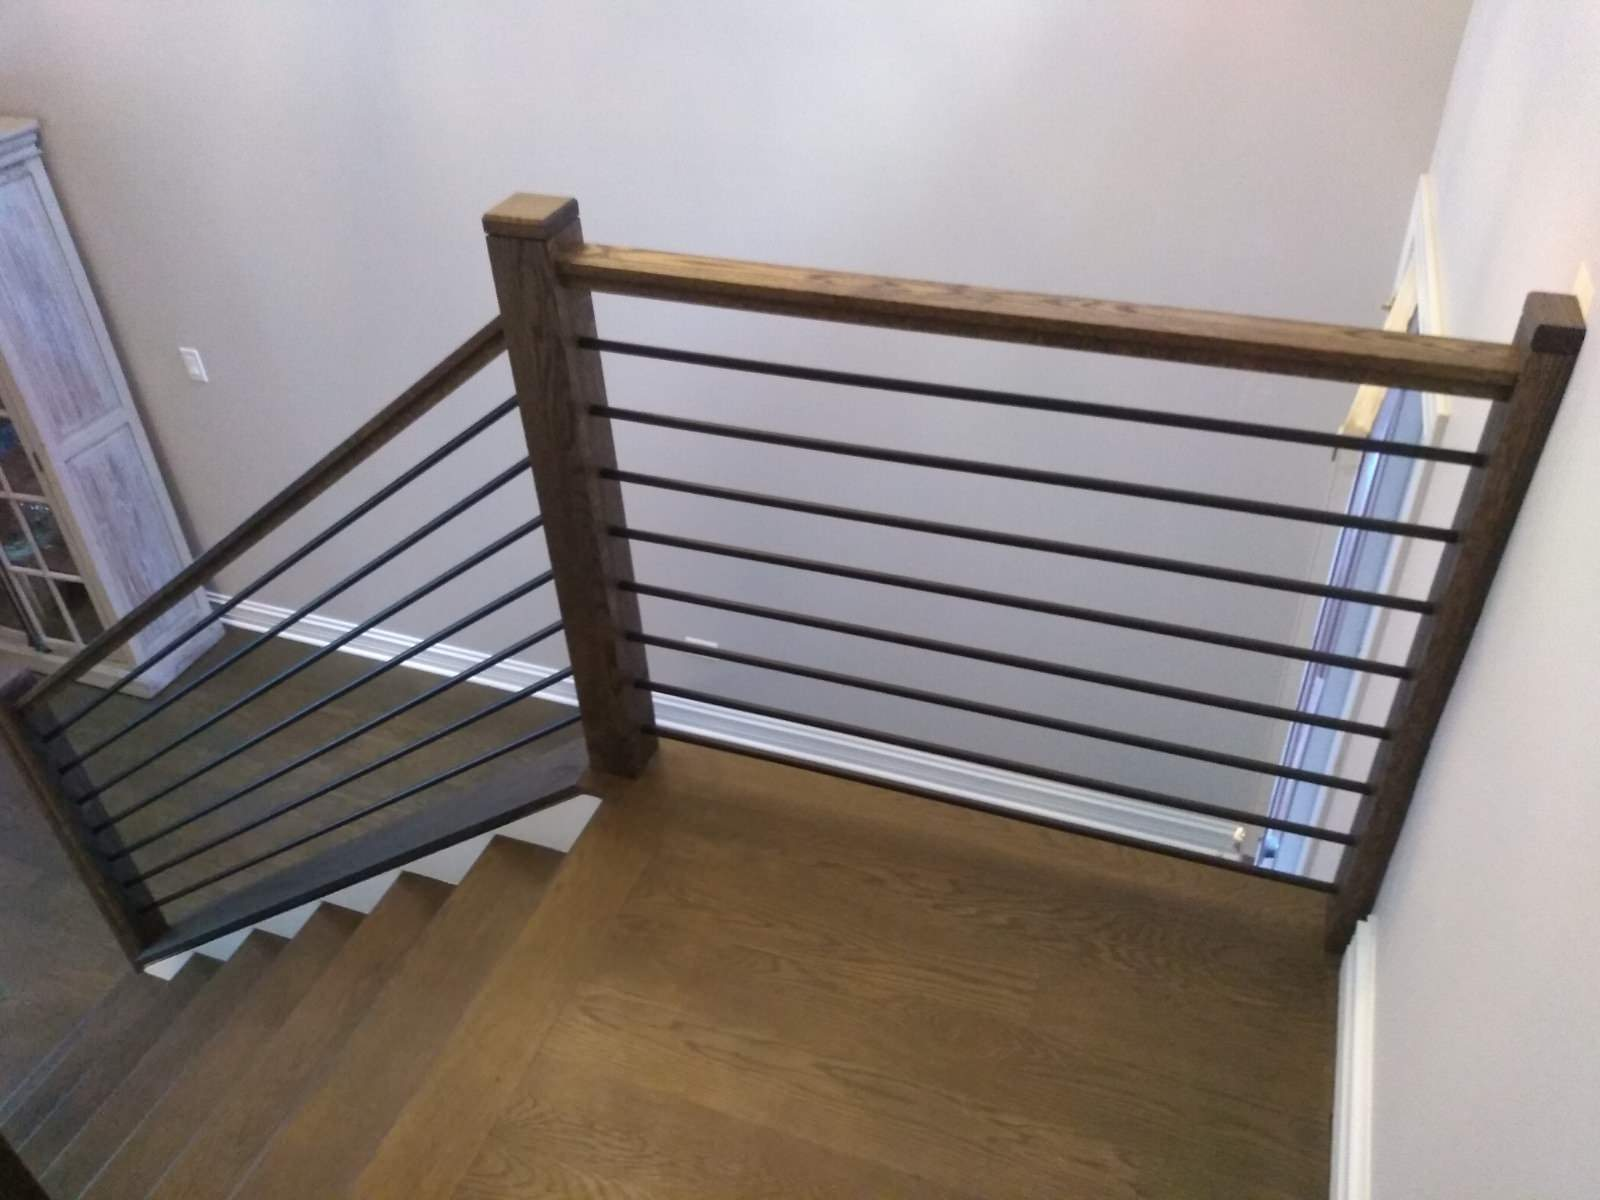 Modern Railings needed